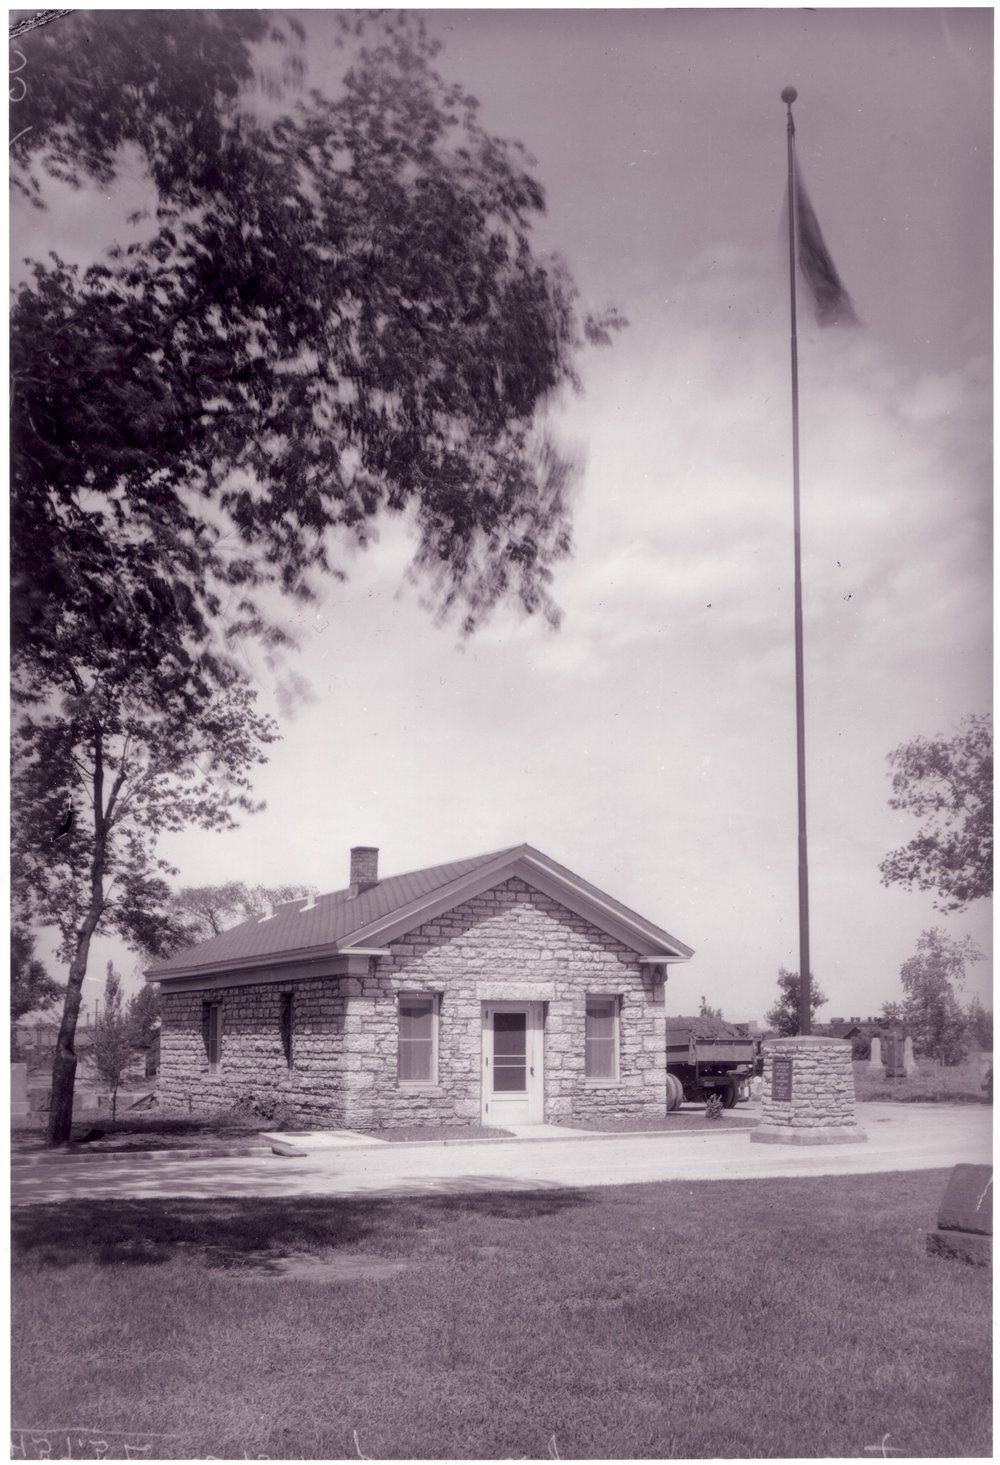 """Pioneers and Soldiers Memorial Cemetery - Visit the city's oldest existing cemetery! Tour the caretaker's cottage (built in 1871), go on a smartphone history hunt and chat with volunteers. On Sunday at 1 pm, 2 pm, and 3 pm, see """"Hiraeth: Walking the Long Field at Layman's,"""" a short three-part play written by award-winning playwright Cynthia Veal Holm. ."""